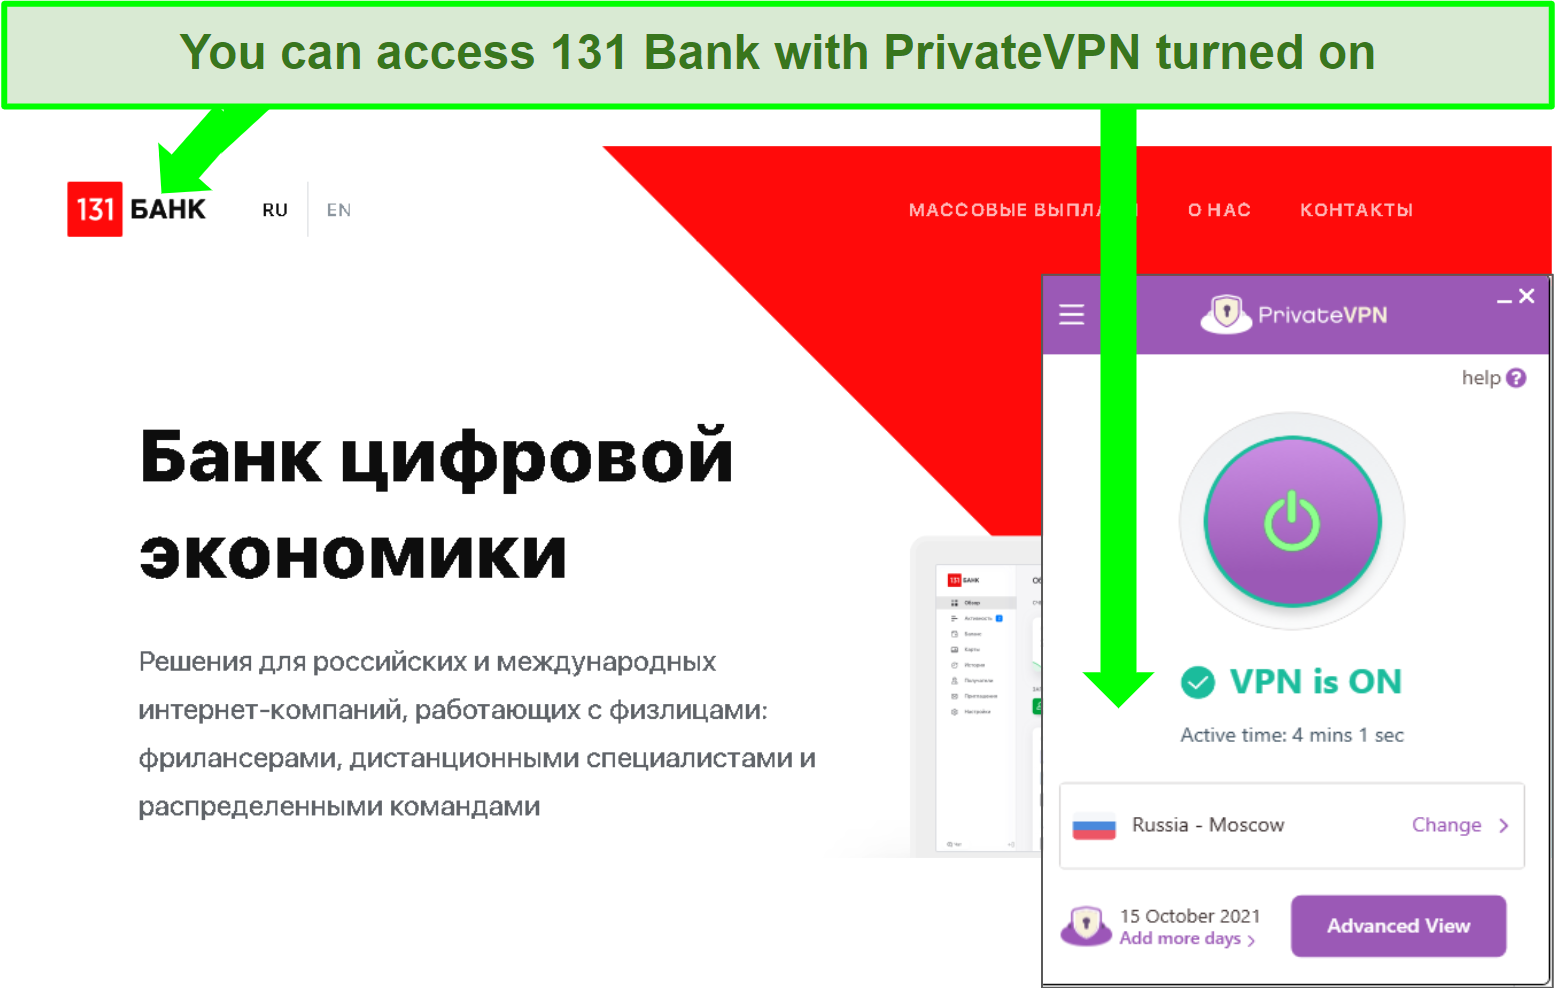 Screenshot of 131 Bank in the Russian language with PrivateVPN connected